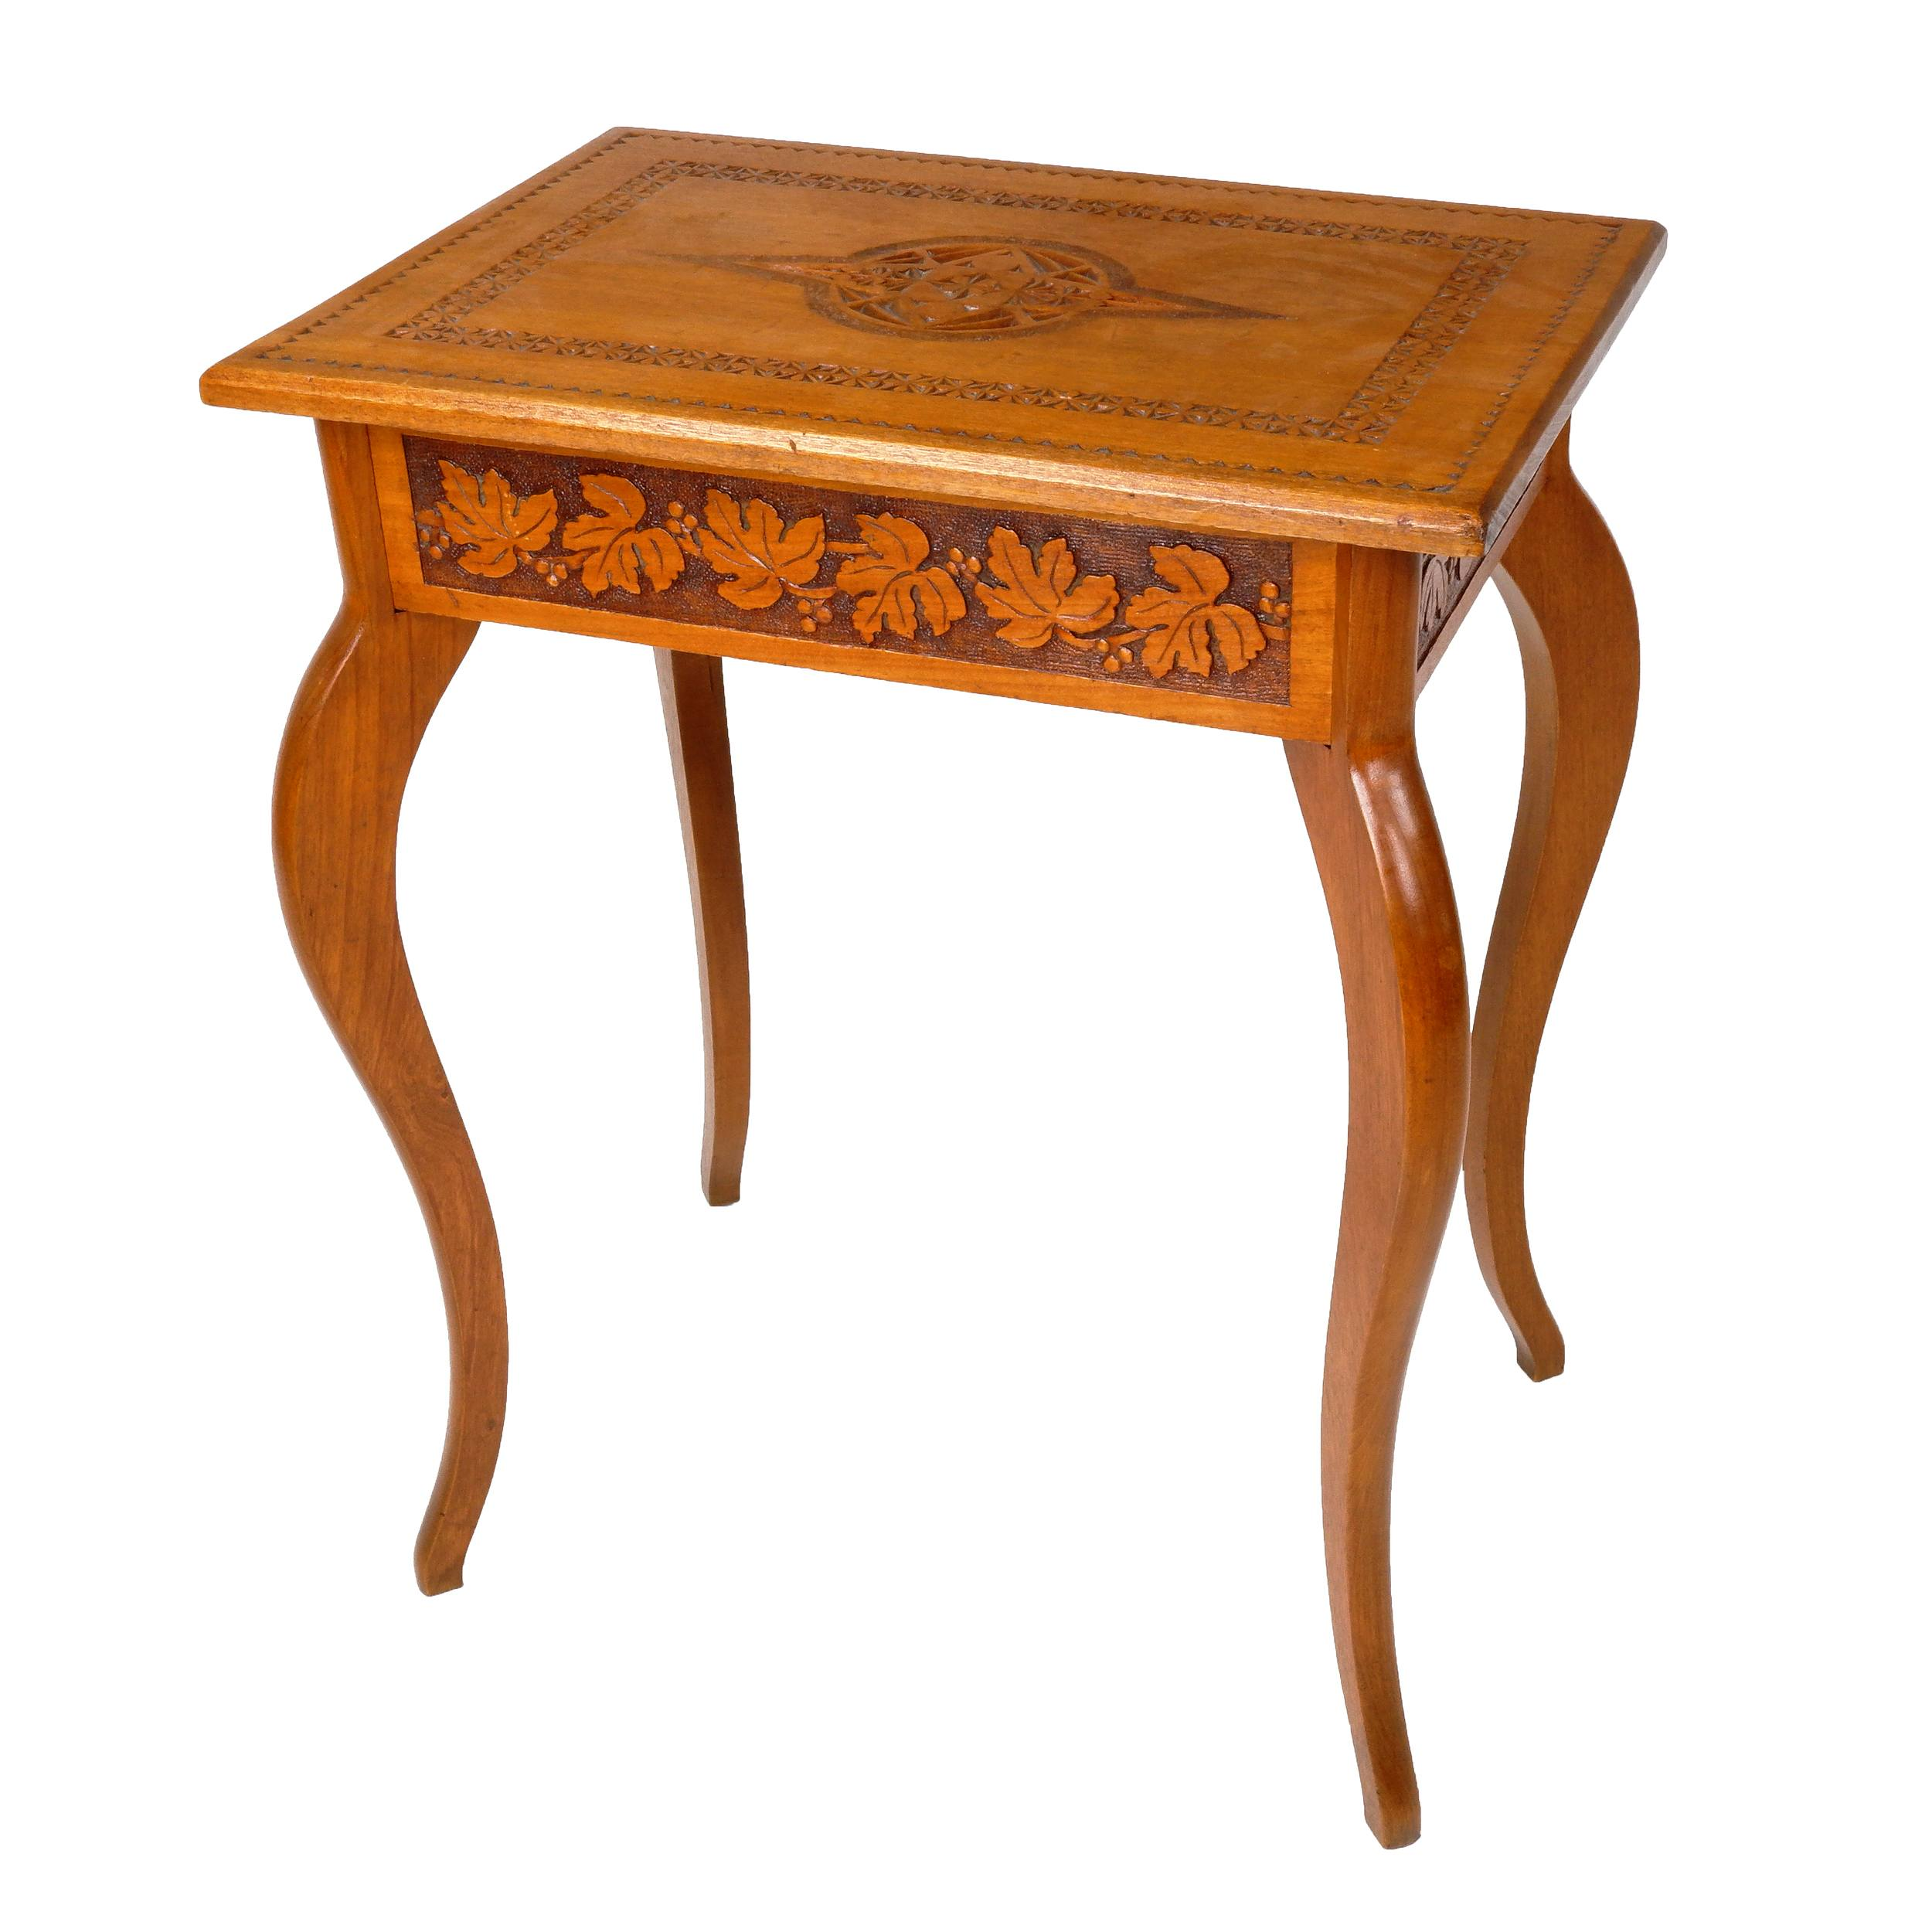 'Arts and Crafts Maple Occasional Table with Chip Carved Decoration and Maple Leaf Boarder, Early to Mid 20th Century'